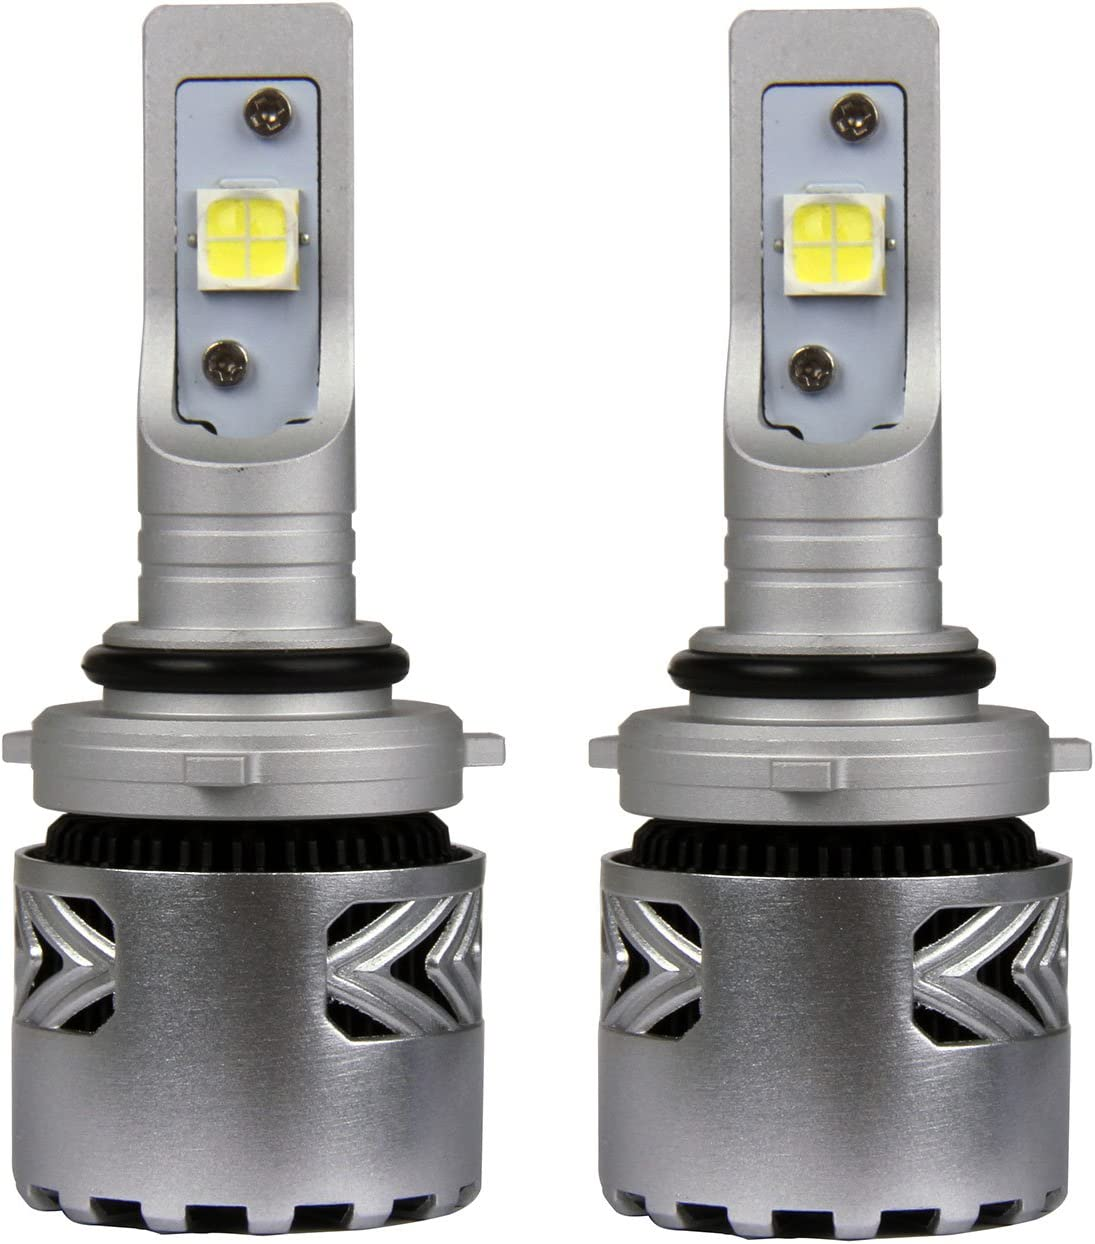 Auto Xenon White LED Special Campaign Bulbs Low 2pcs HeadLight for Max 53% OFF Beam